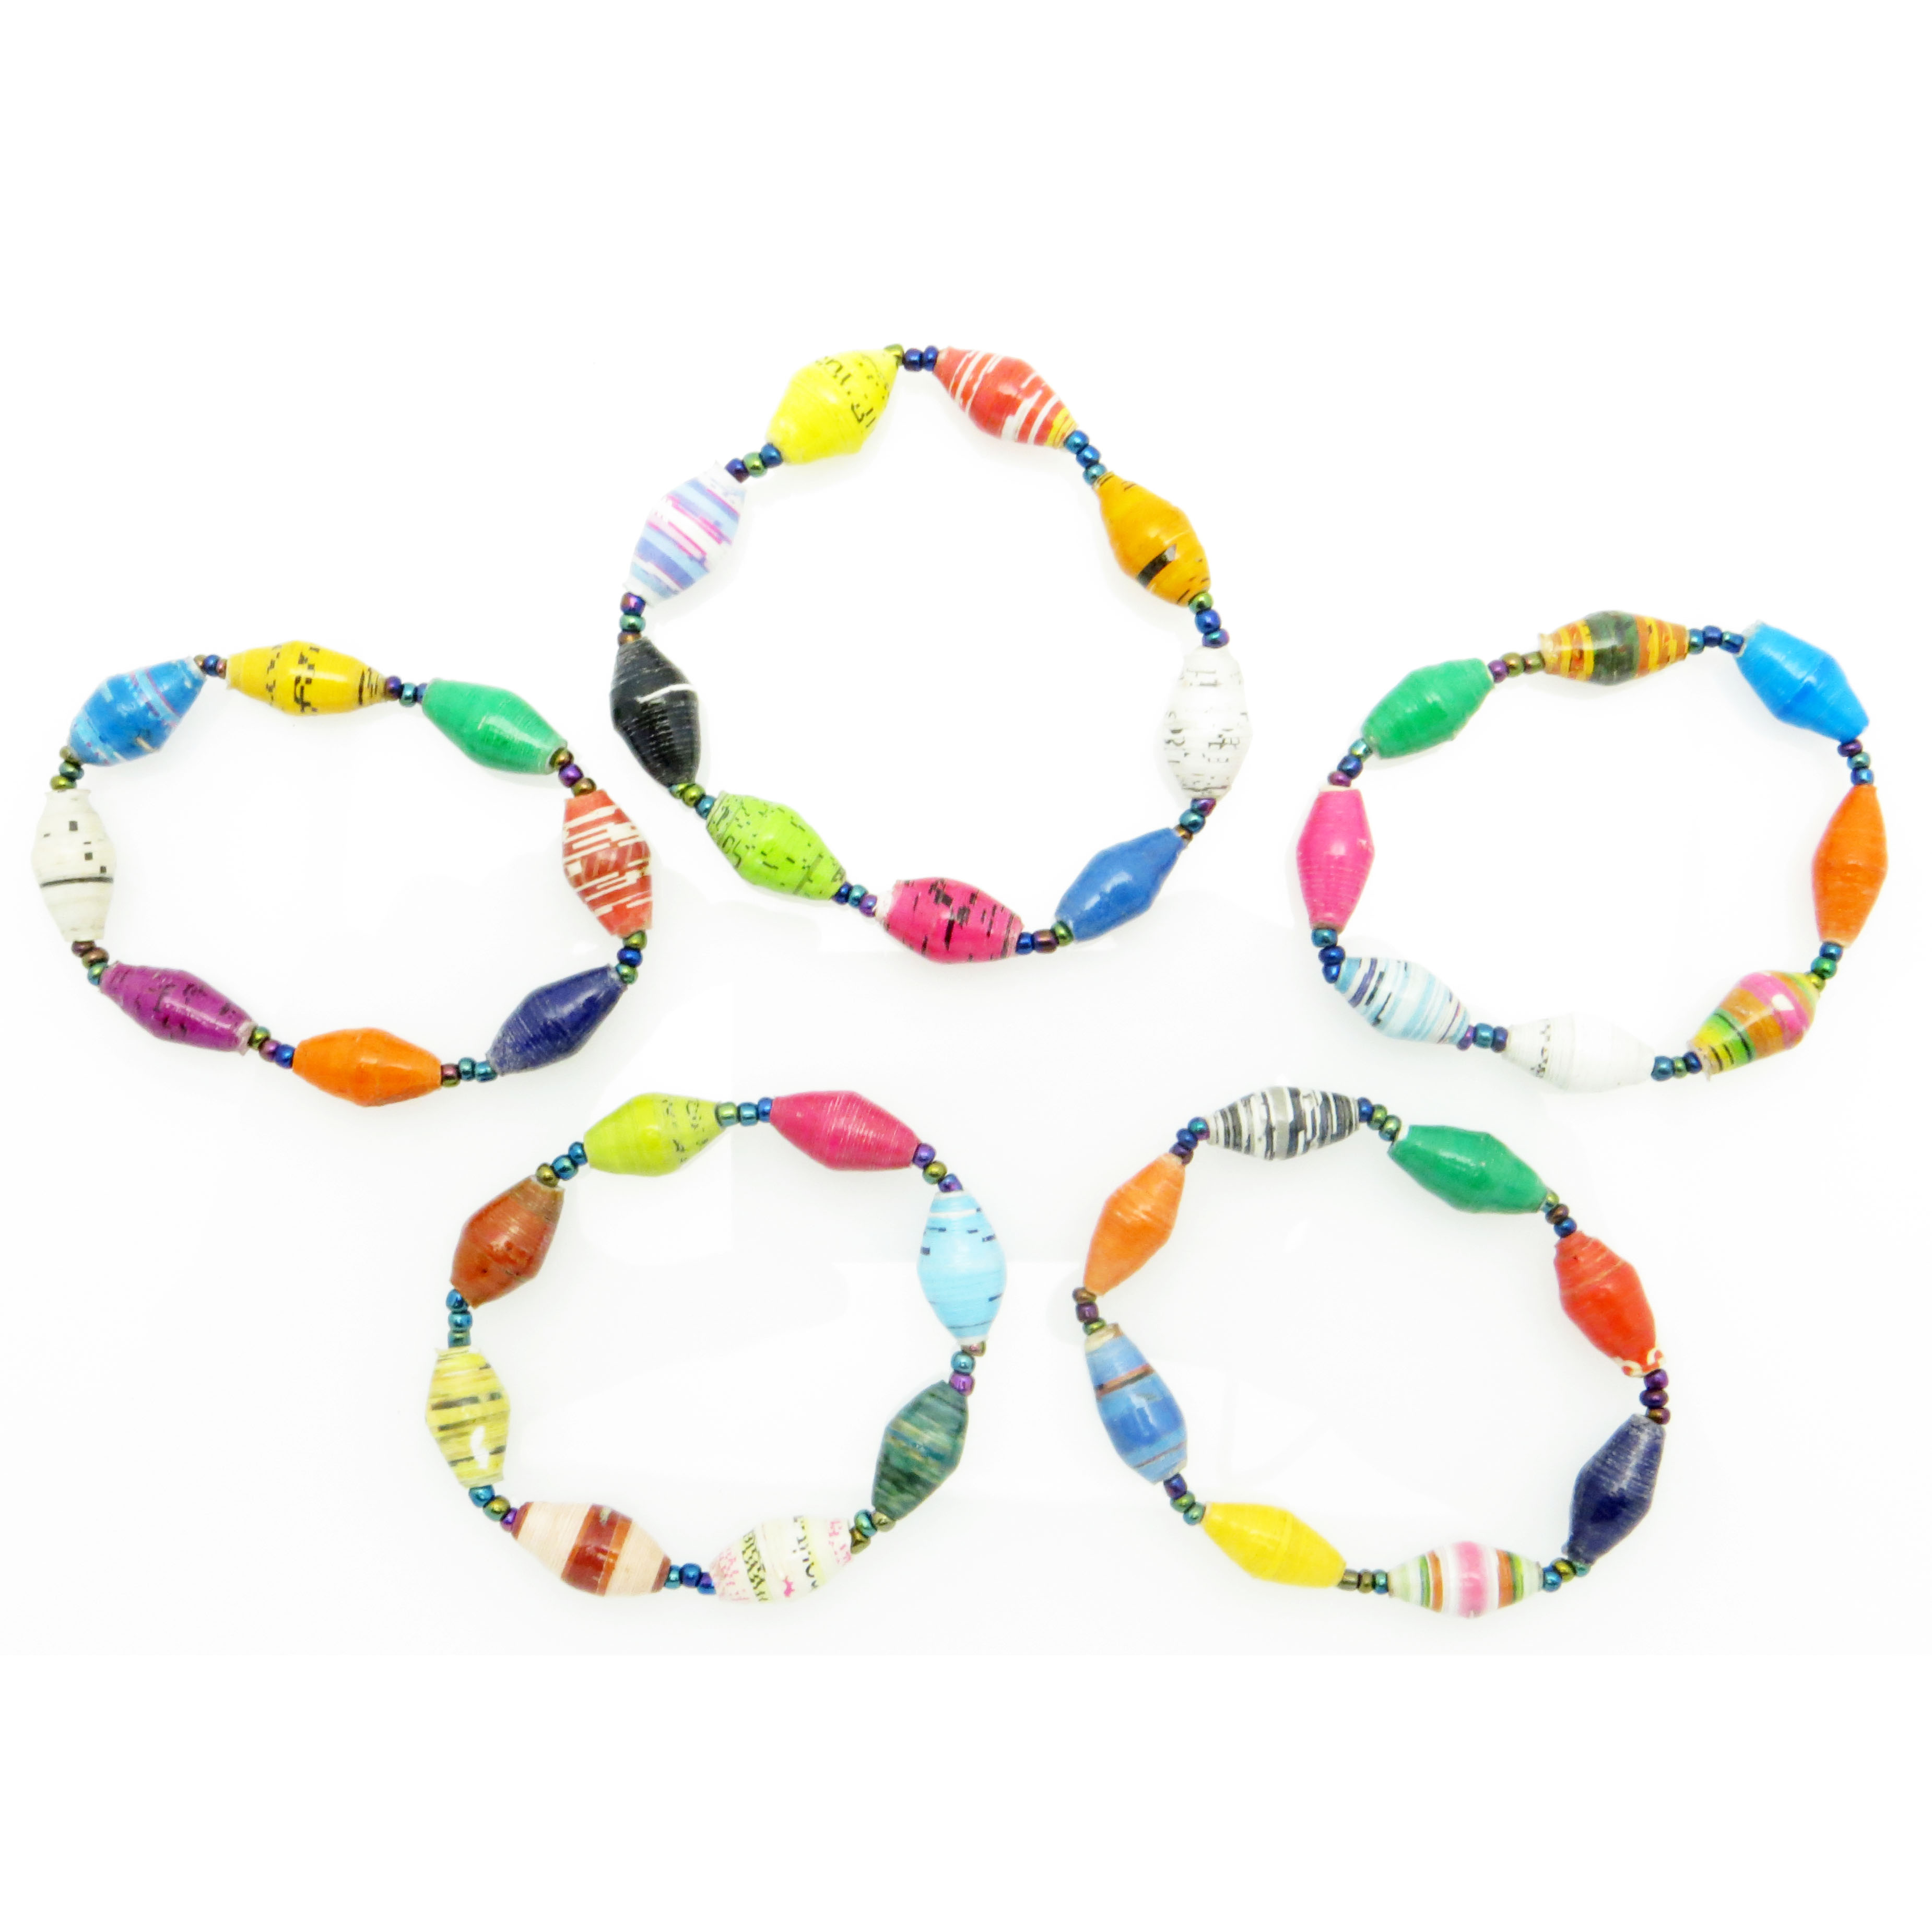 Child's bracelet - multi-color child's bracelet